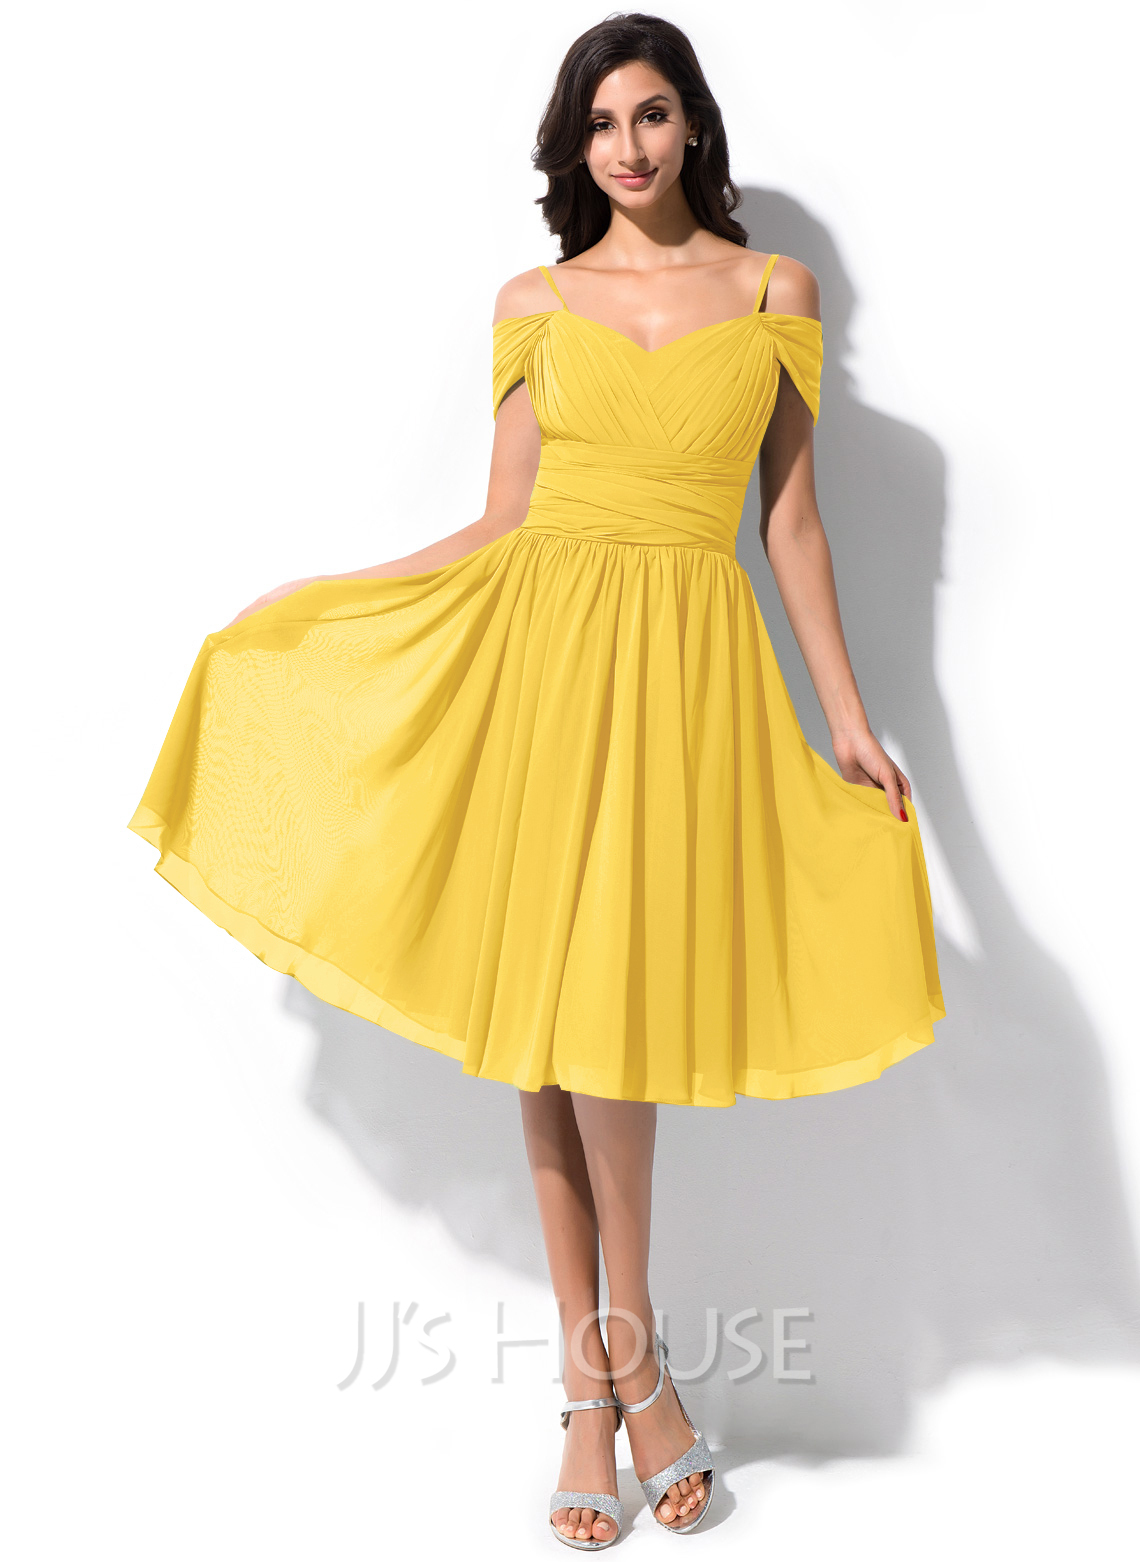 6daa5abb62 A-Line Princess Off-the-Shoulder Knee-Length Chiffon Bridesmaid Dress.  Loading zoom